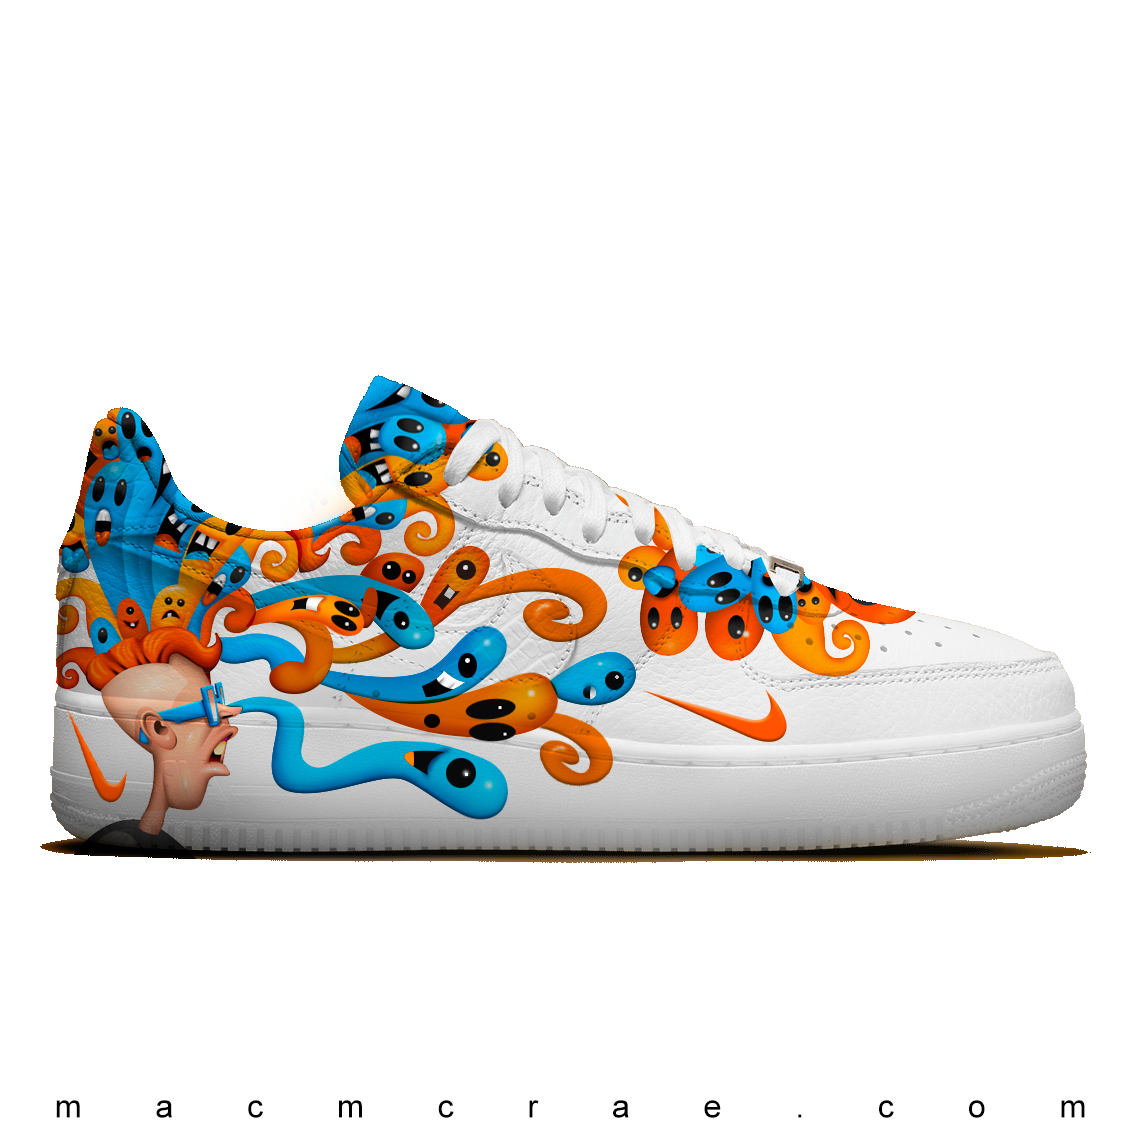 Airforce One Chaos